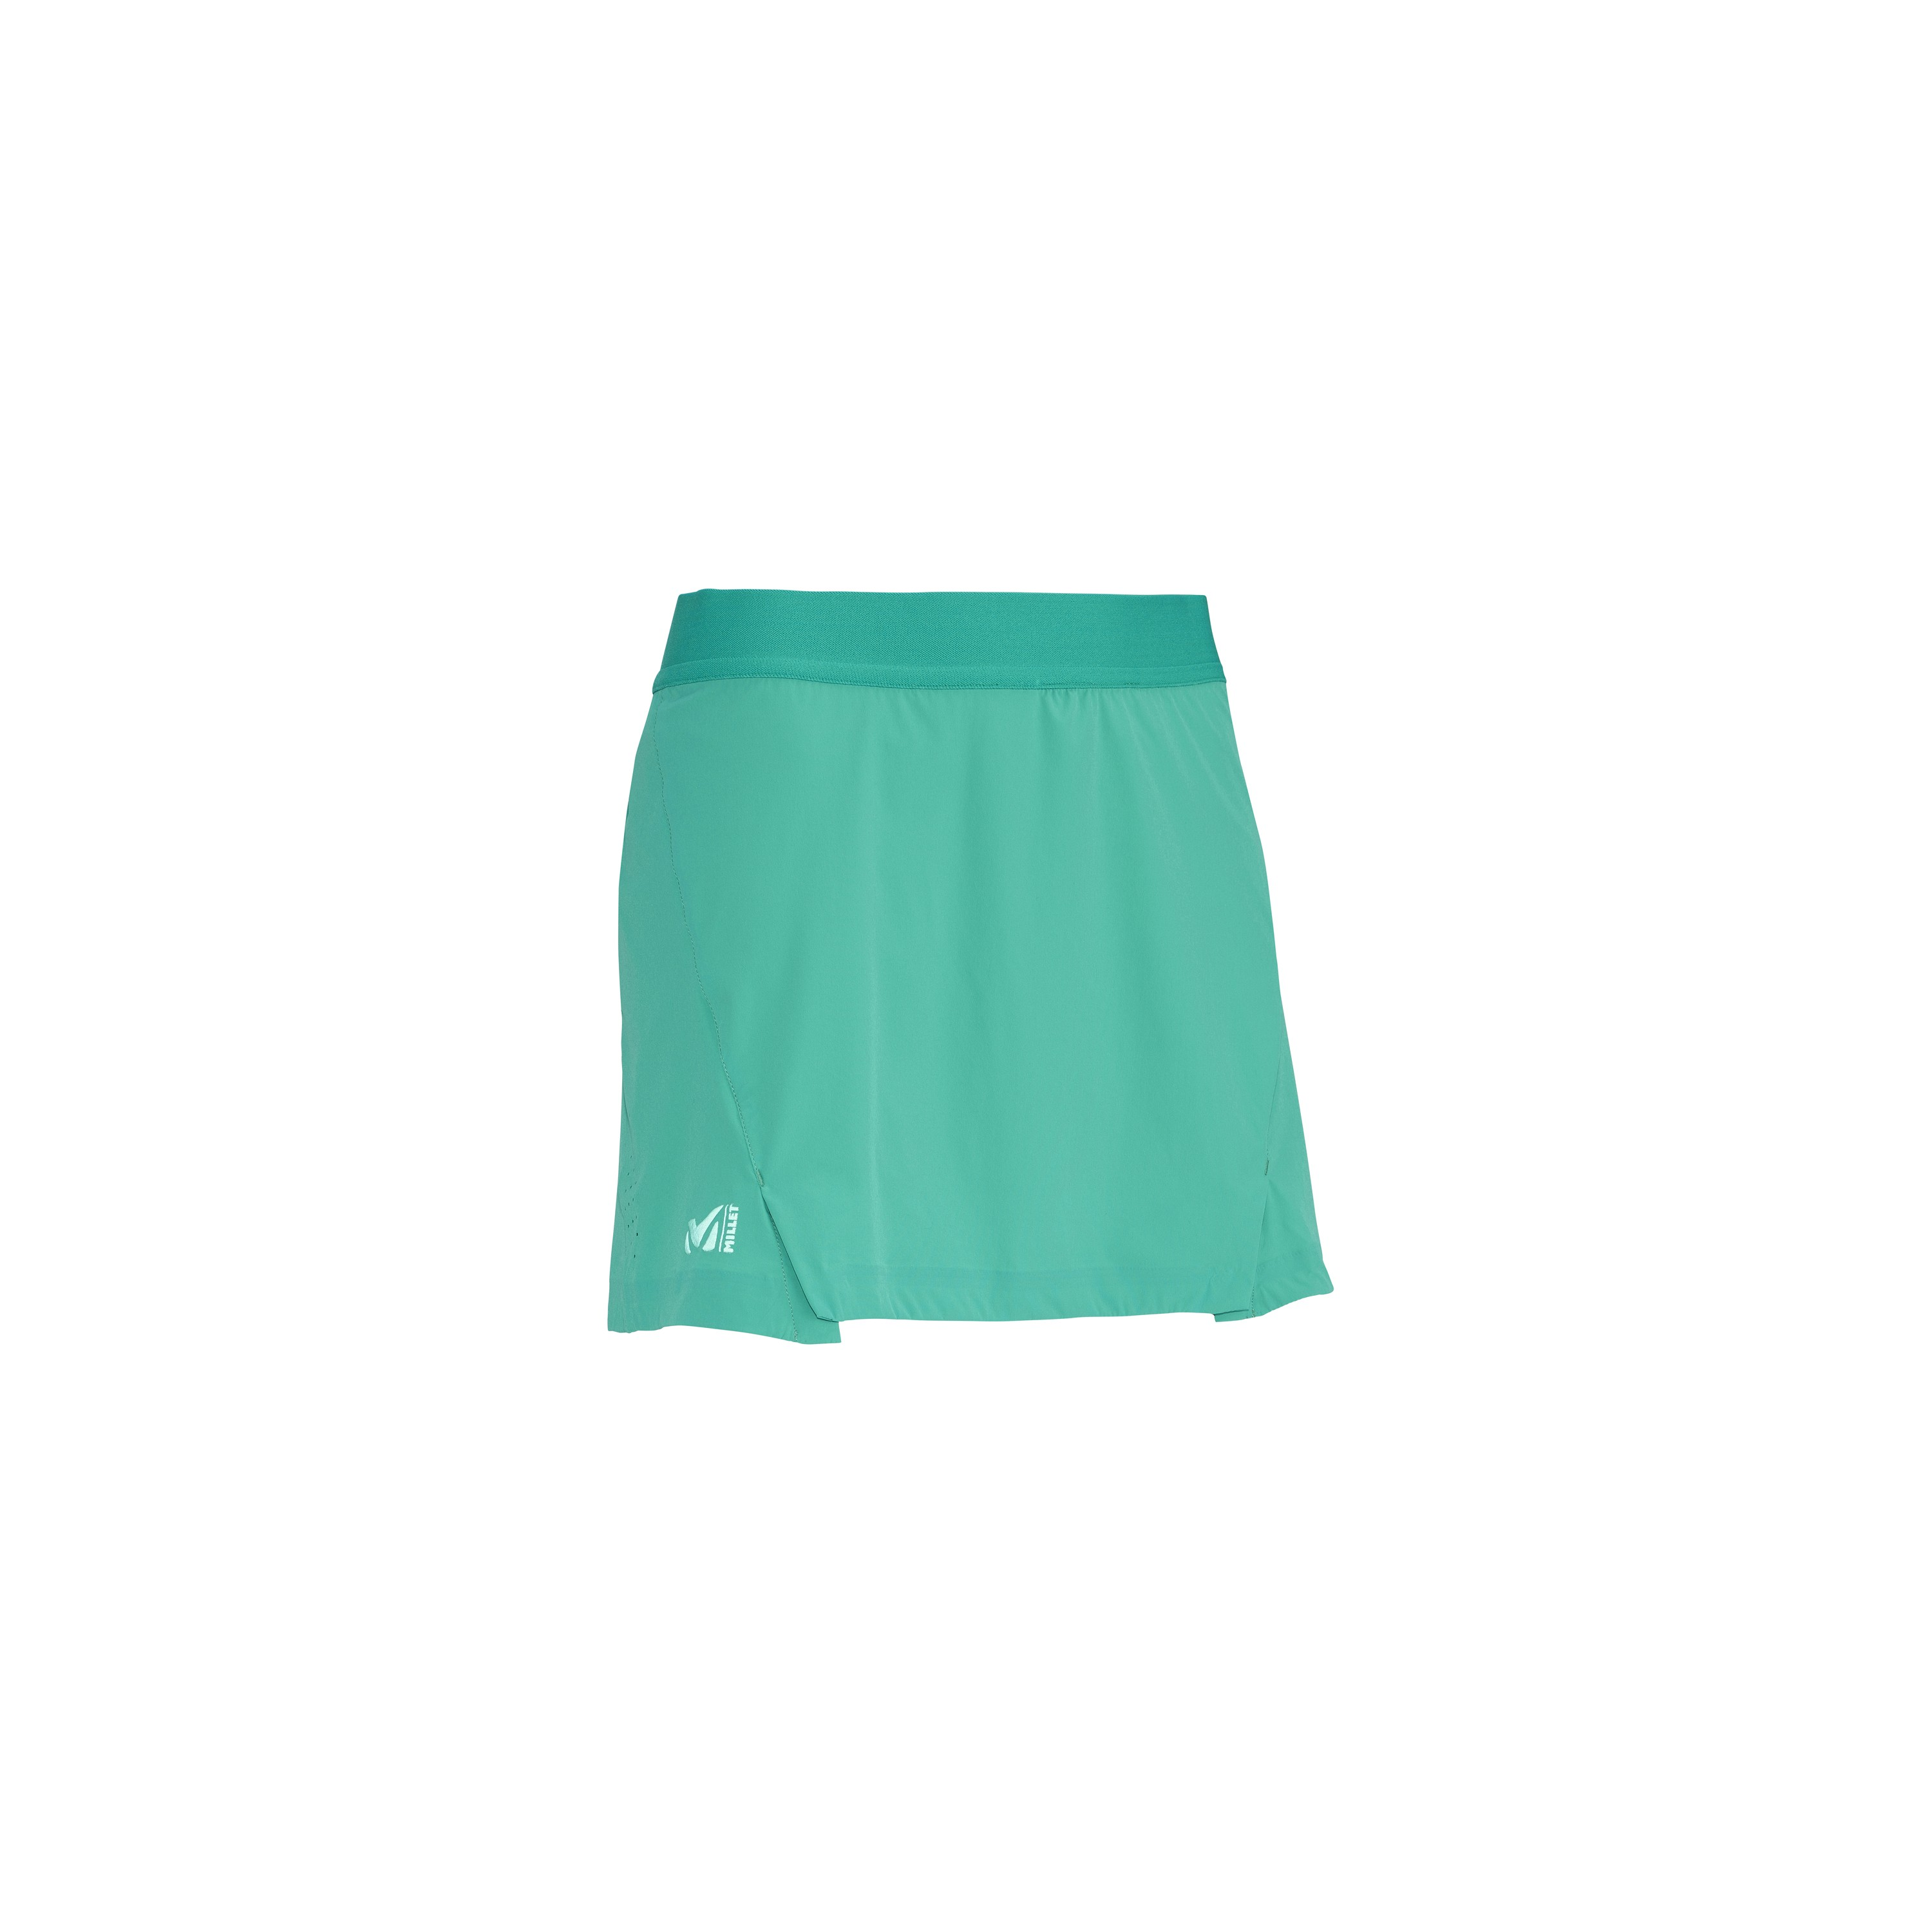 LD LTK INTENSE SKIRT